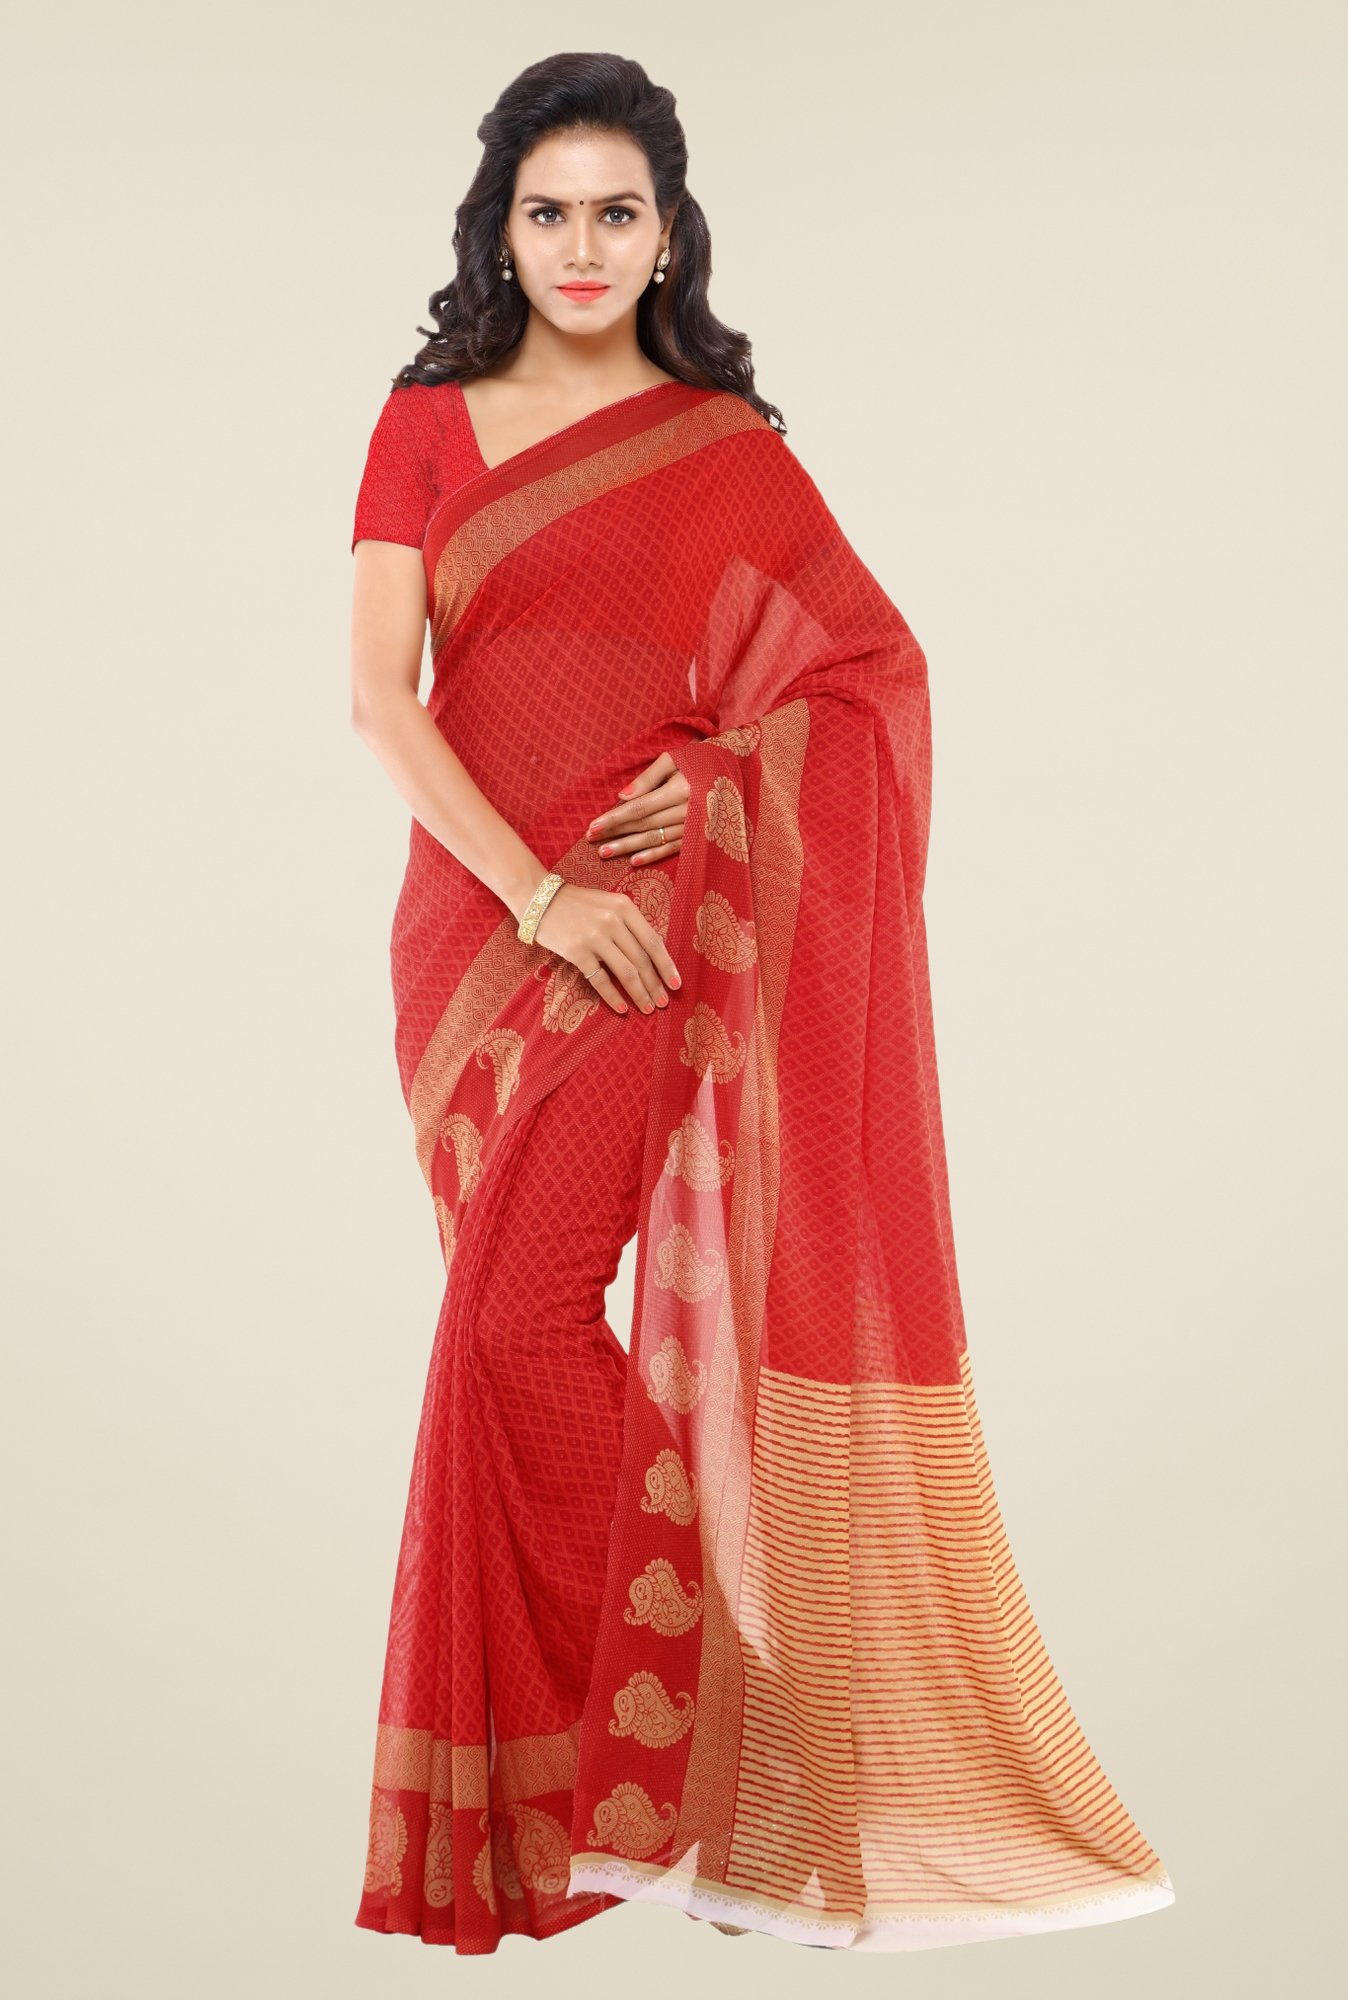 Triveni Red Printed Faux Georgette Saree